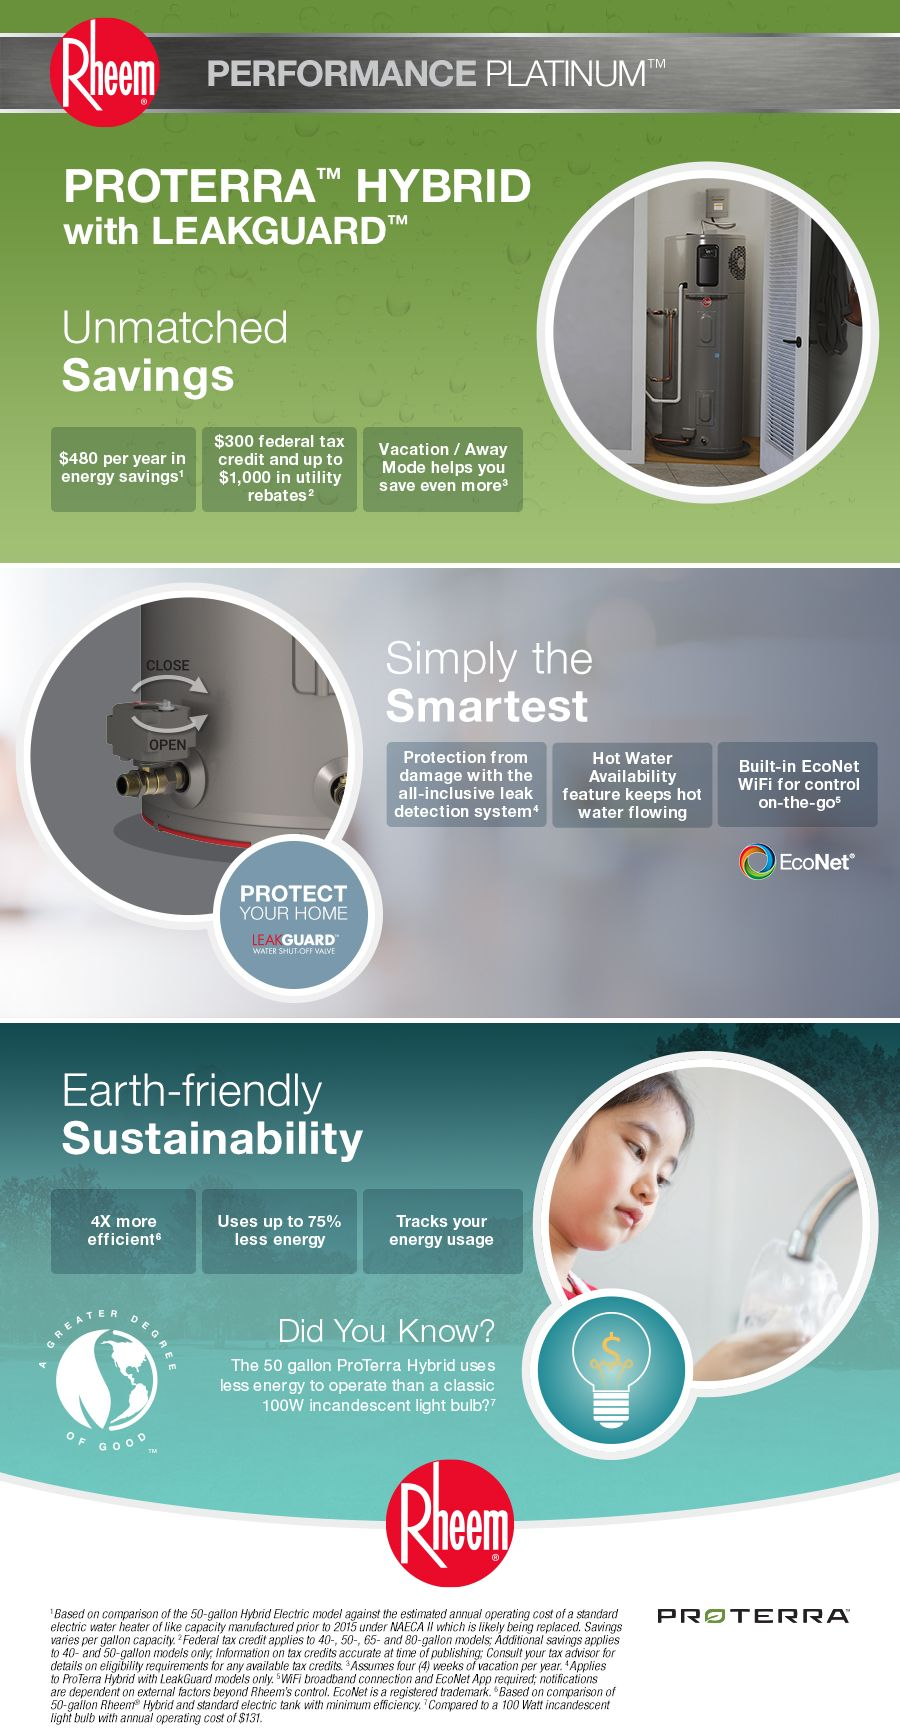 Rheem Proterra 50 Gal 10 Year Hybrid High Efficiency Smart Tank Electric Water Heater With Leak Detection Auto Shutoff Xe50t10hs45u0 The Home Depot In 2020 Electric Water Heater Water Heater Electric Heat Pump